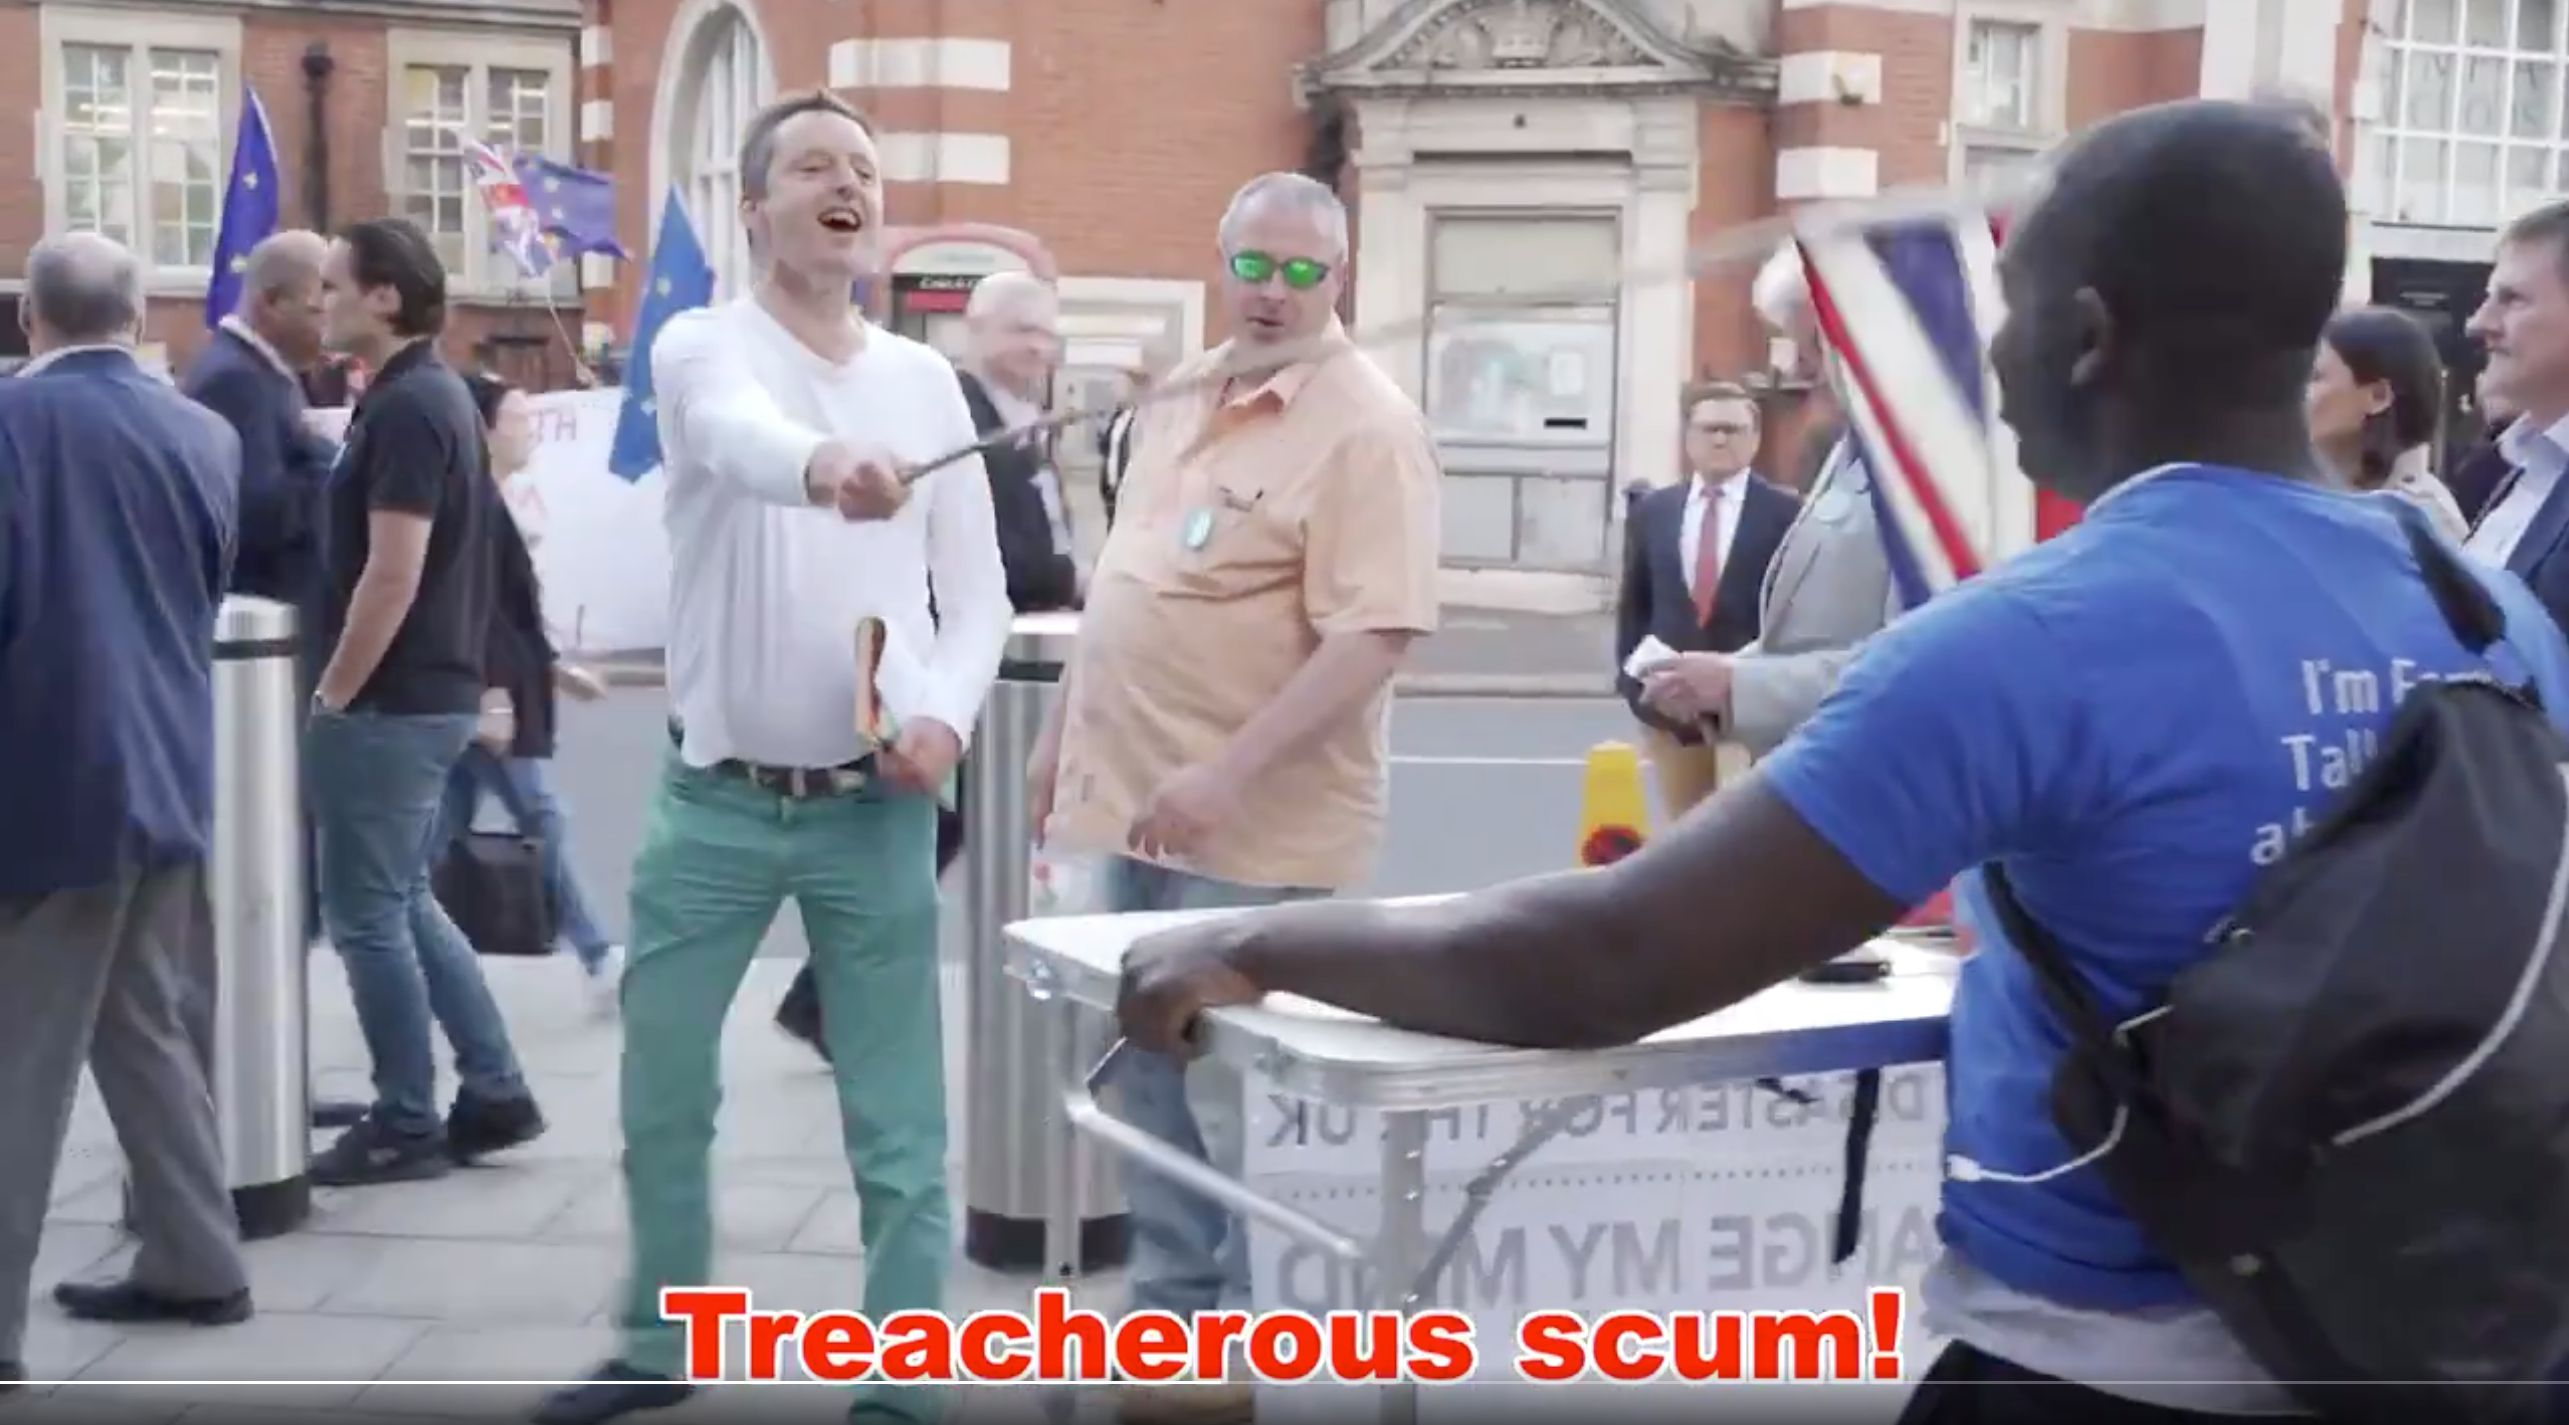 Academic Dr Niall McCrae Filmed Calling Remain Activist 'A F***ing Traitor' During Brexit Rally